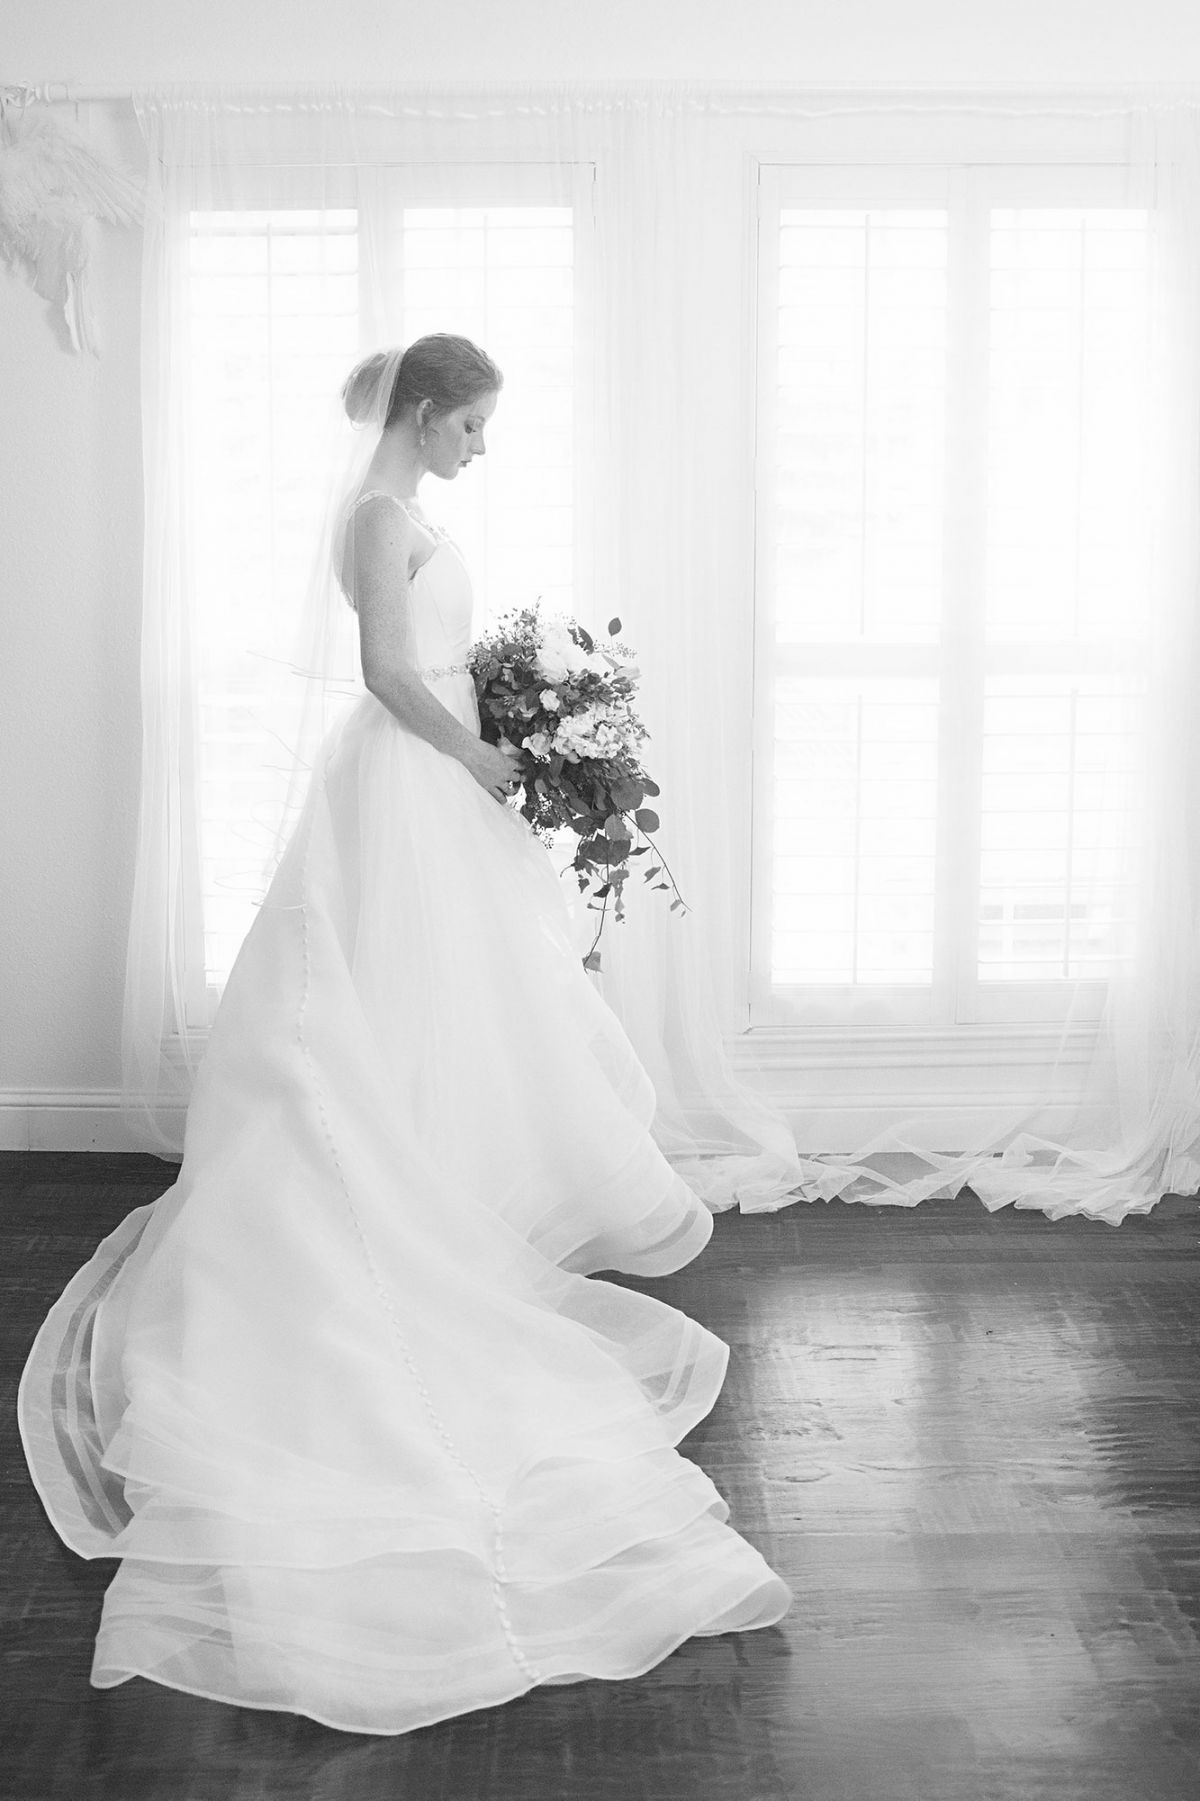 Best_Dallas_Wedding_Photographer_White_Lavender_Photography_by_Sabrina_Moormann